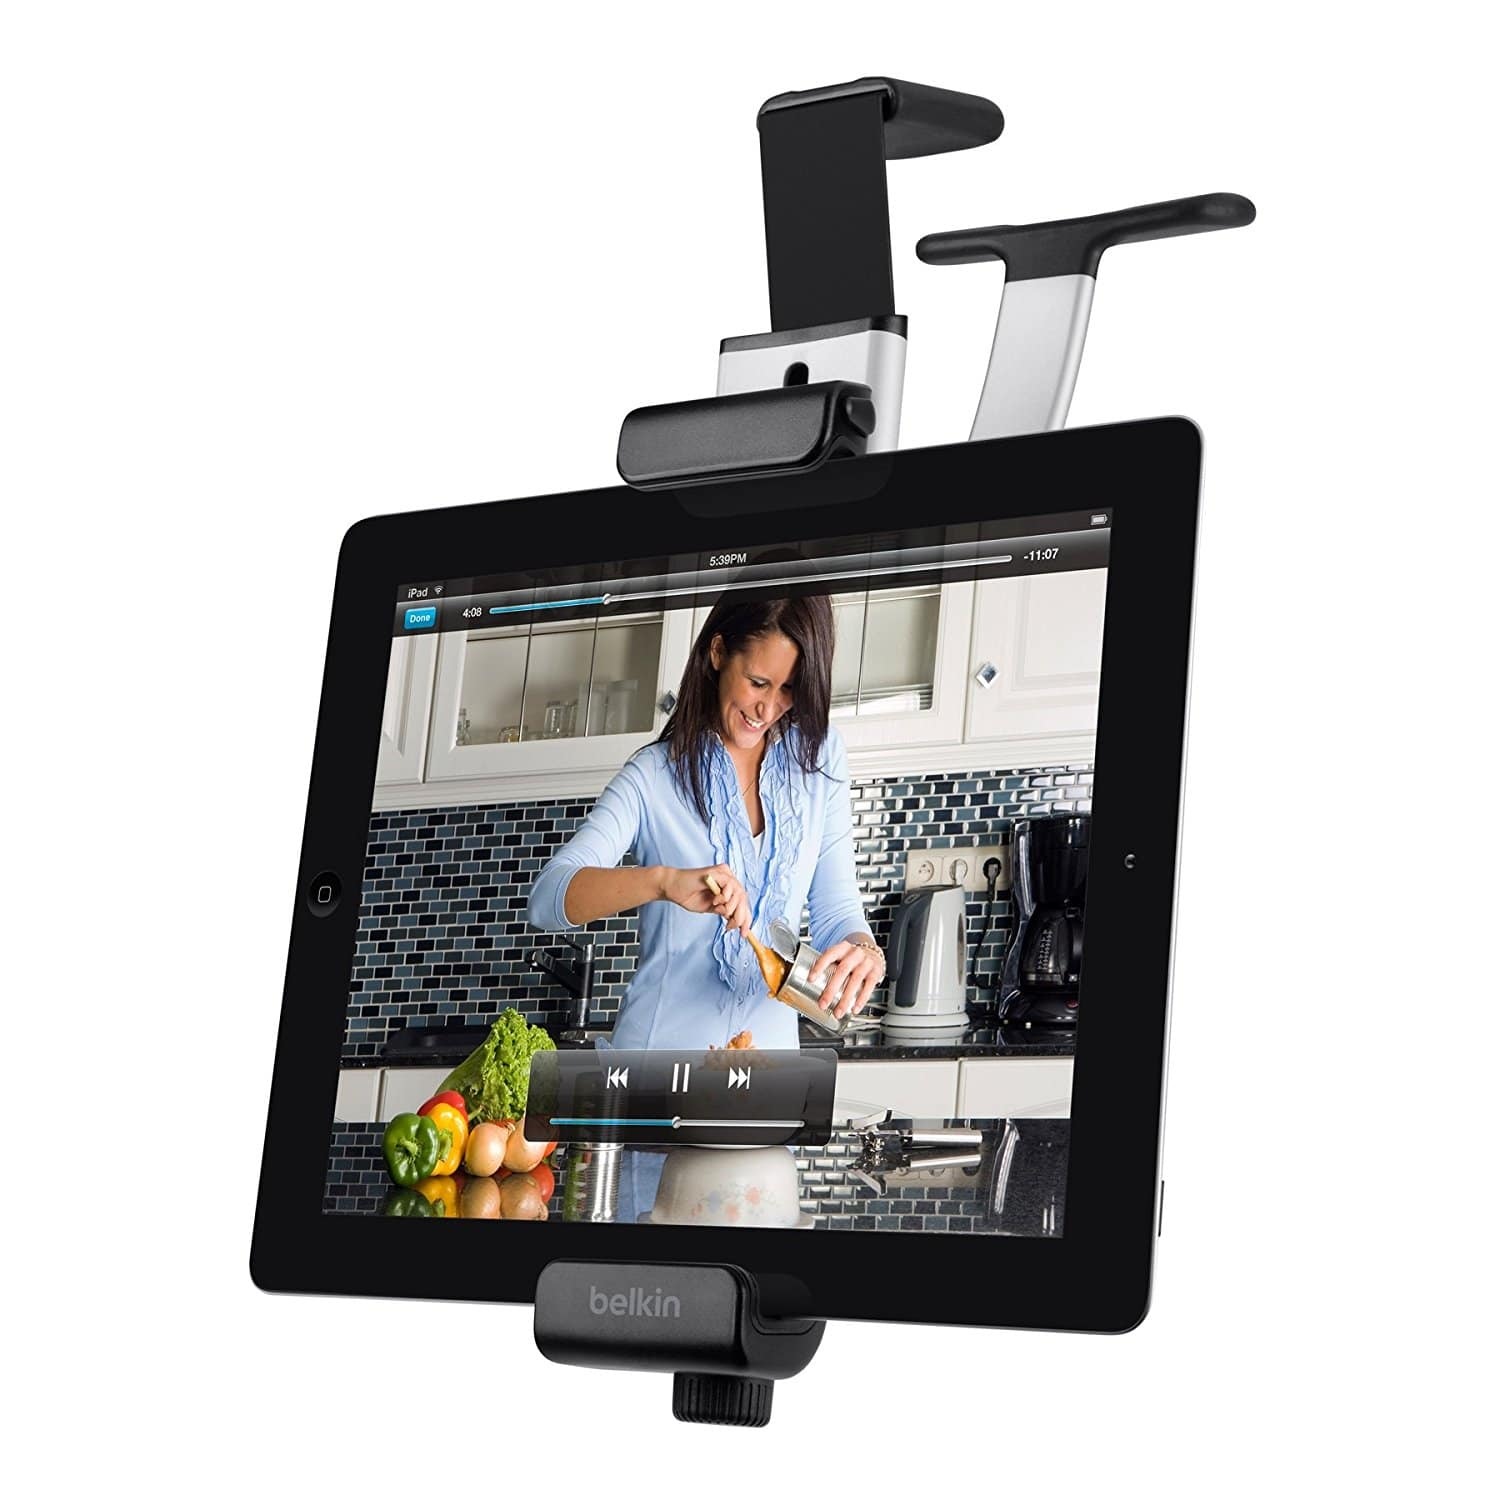 tech gadgets for mother's day belkin kitchen mount